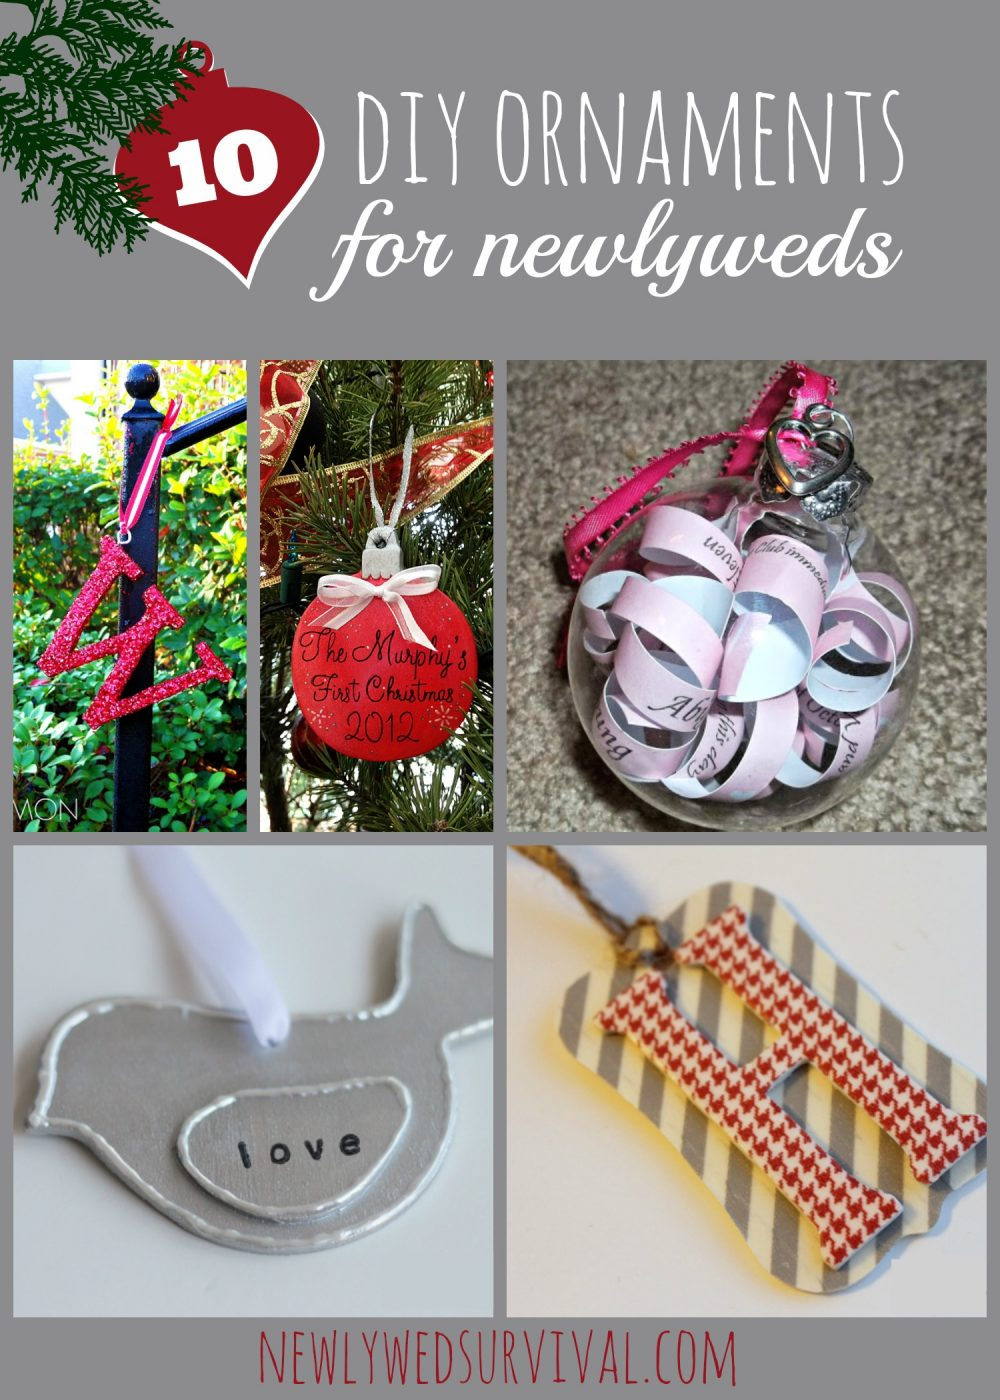 DIY Ornaments for newlyweds + some to buy online!